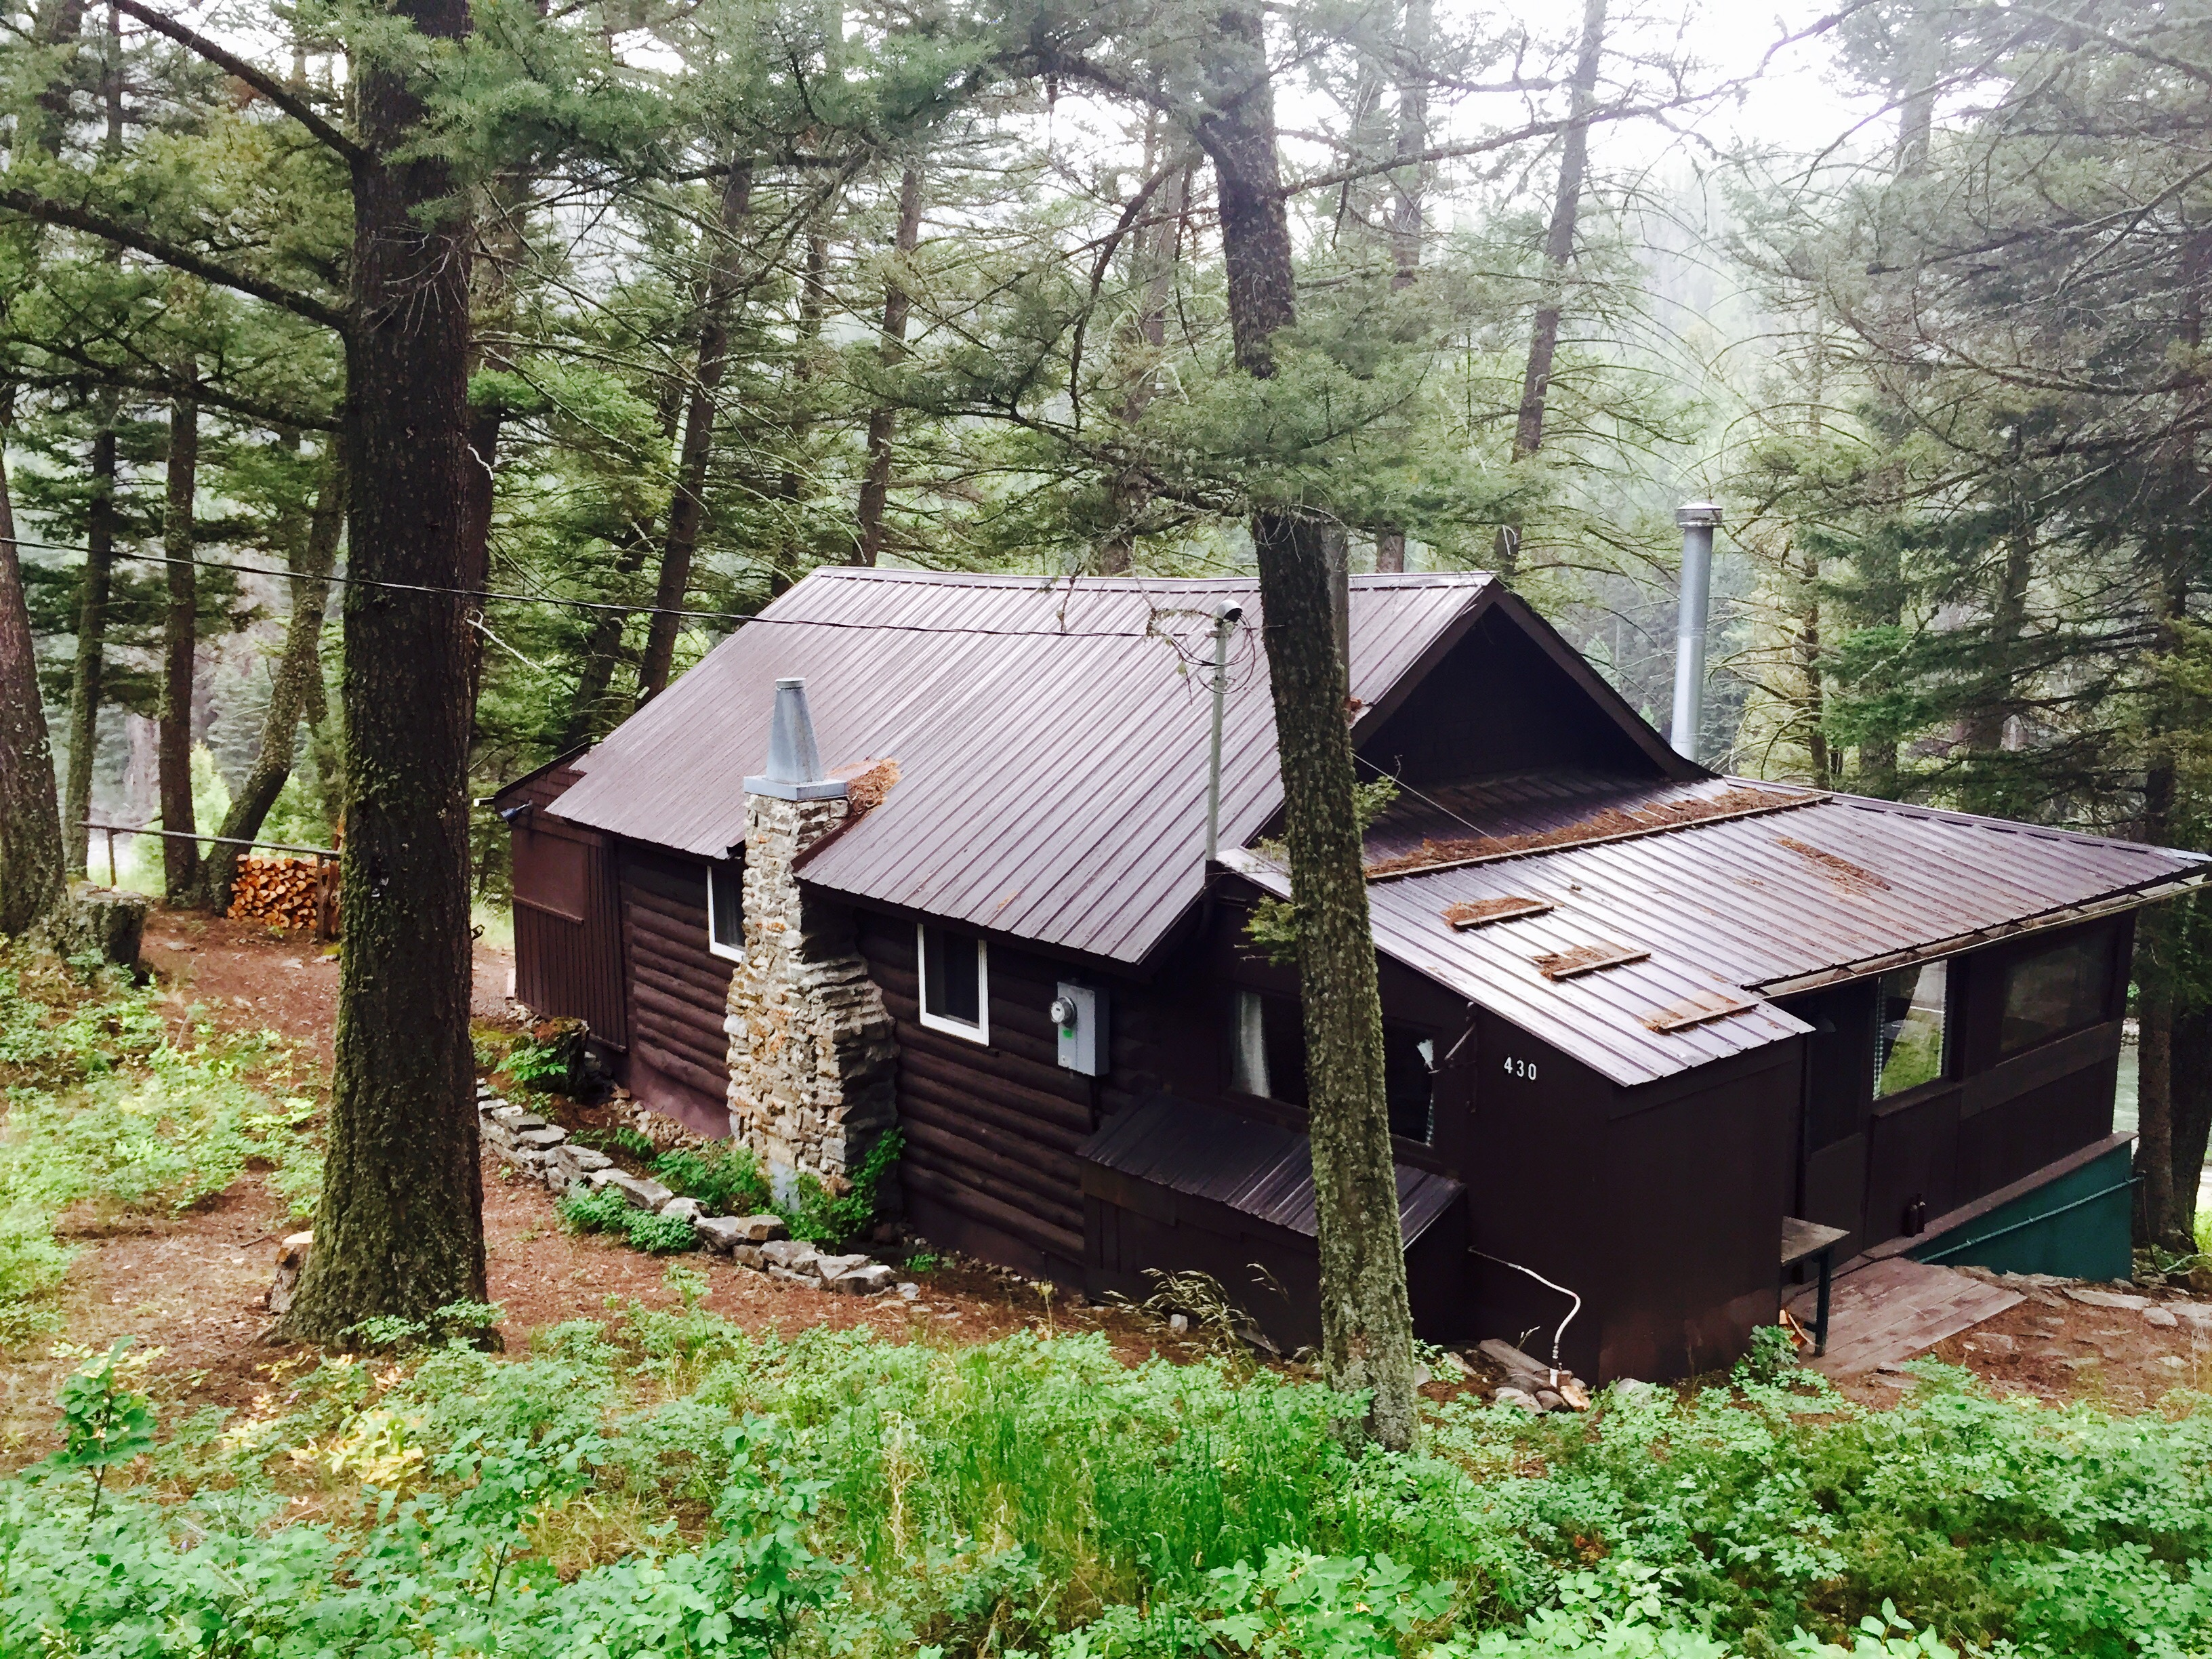 Forest Service Cabin for Sale in Gallatin Canyon